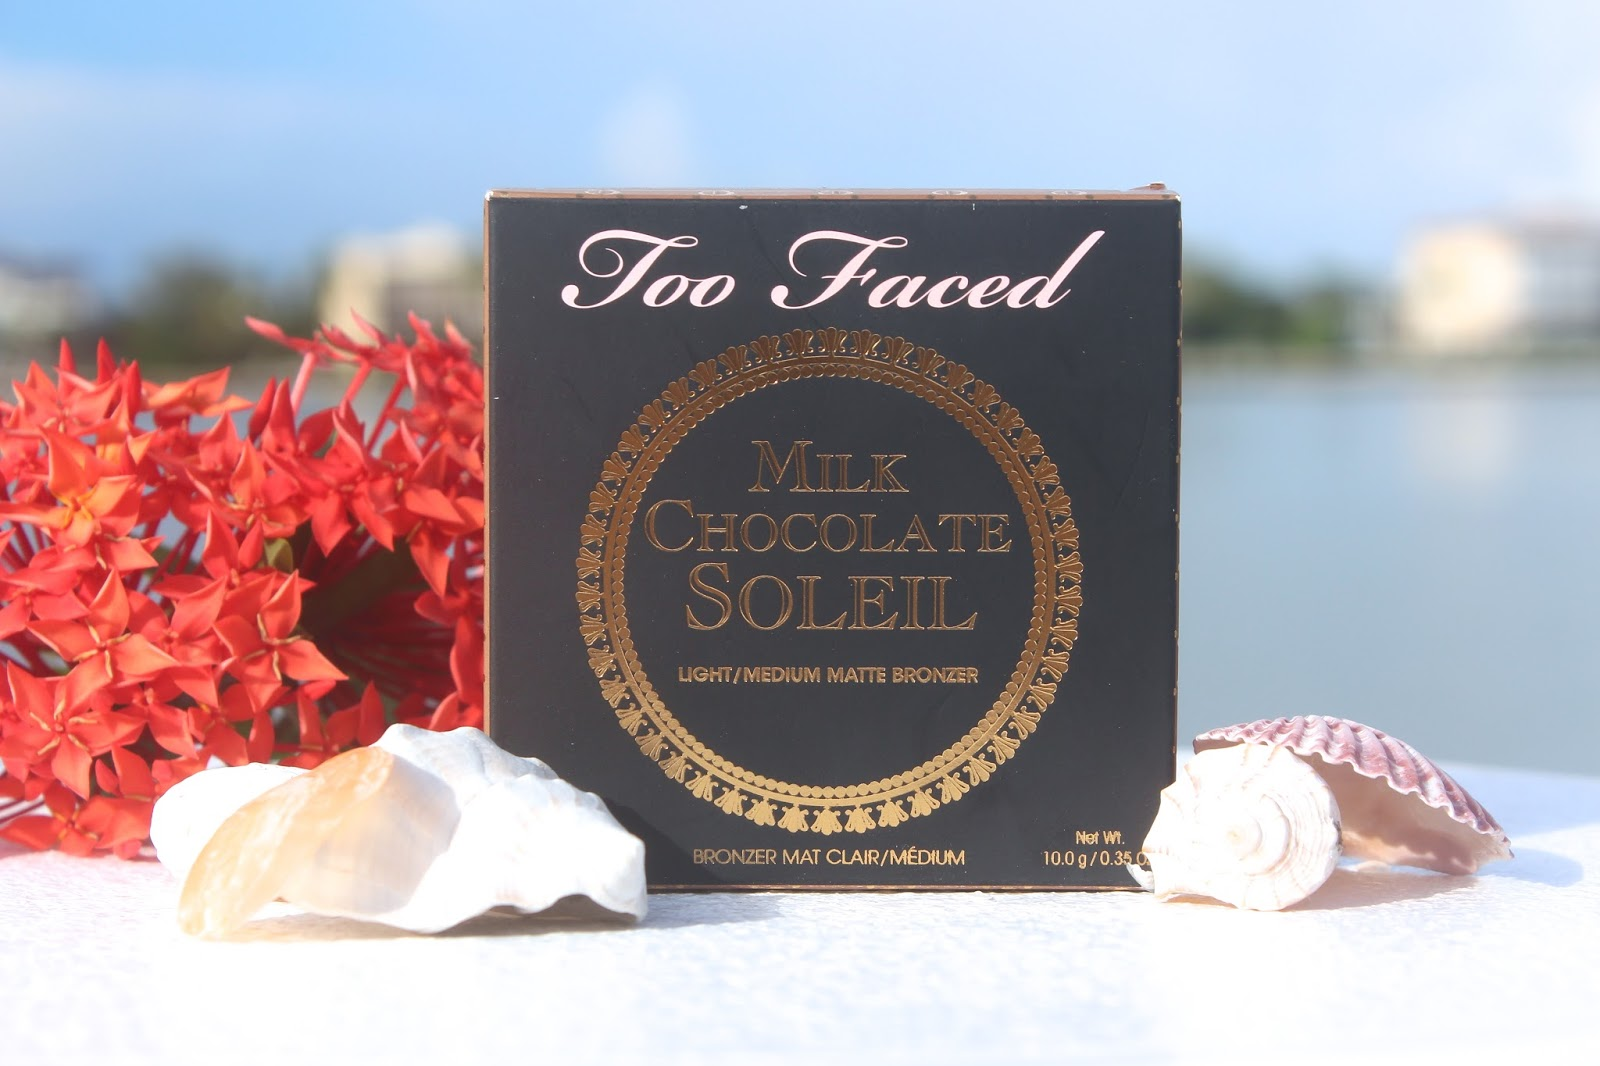 Too Faced Milk Chocolate Soliel